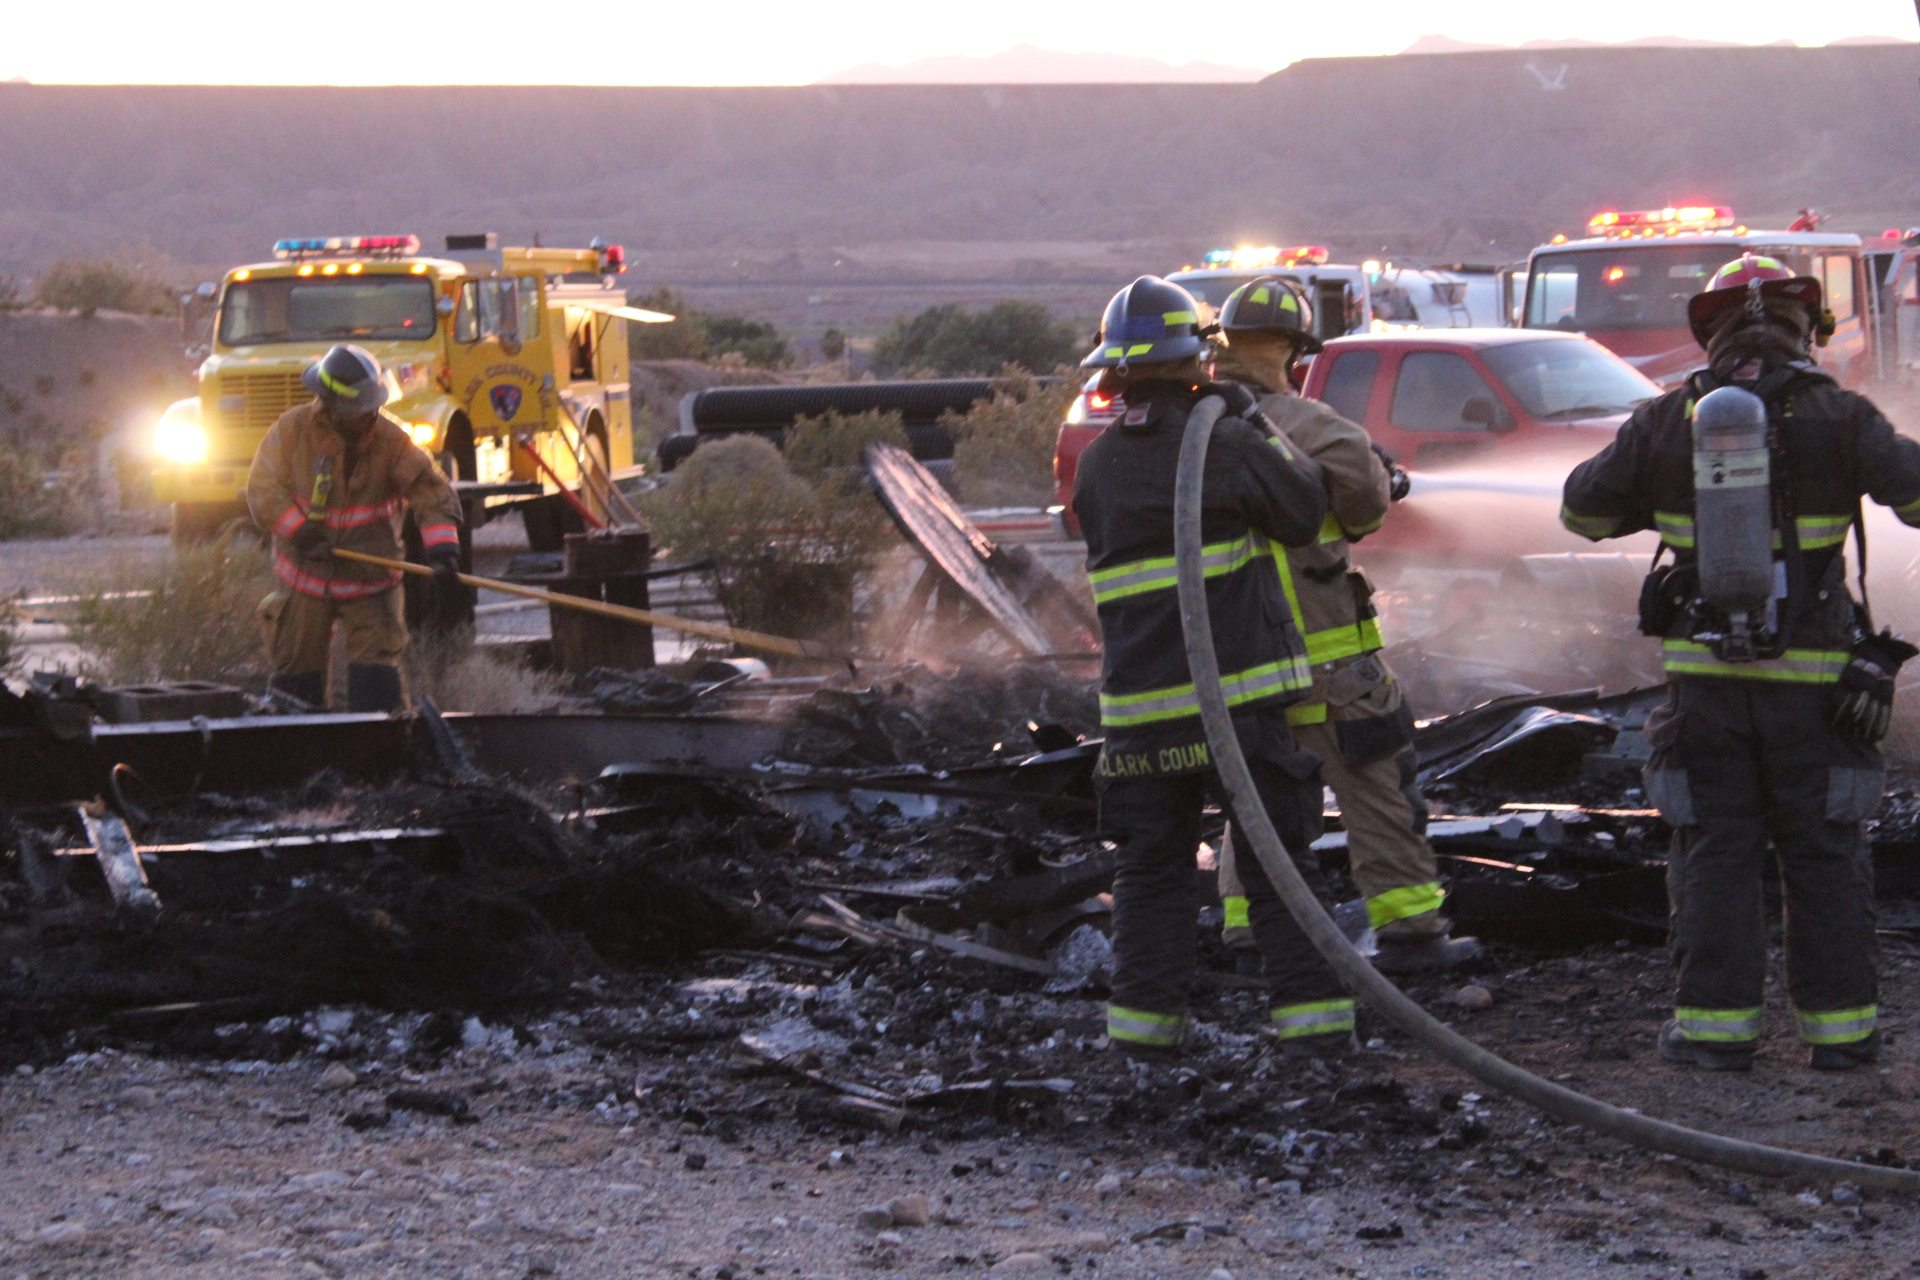 Another structure burns in Bunkerville